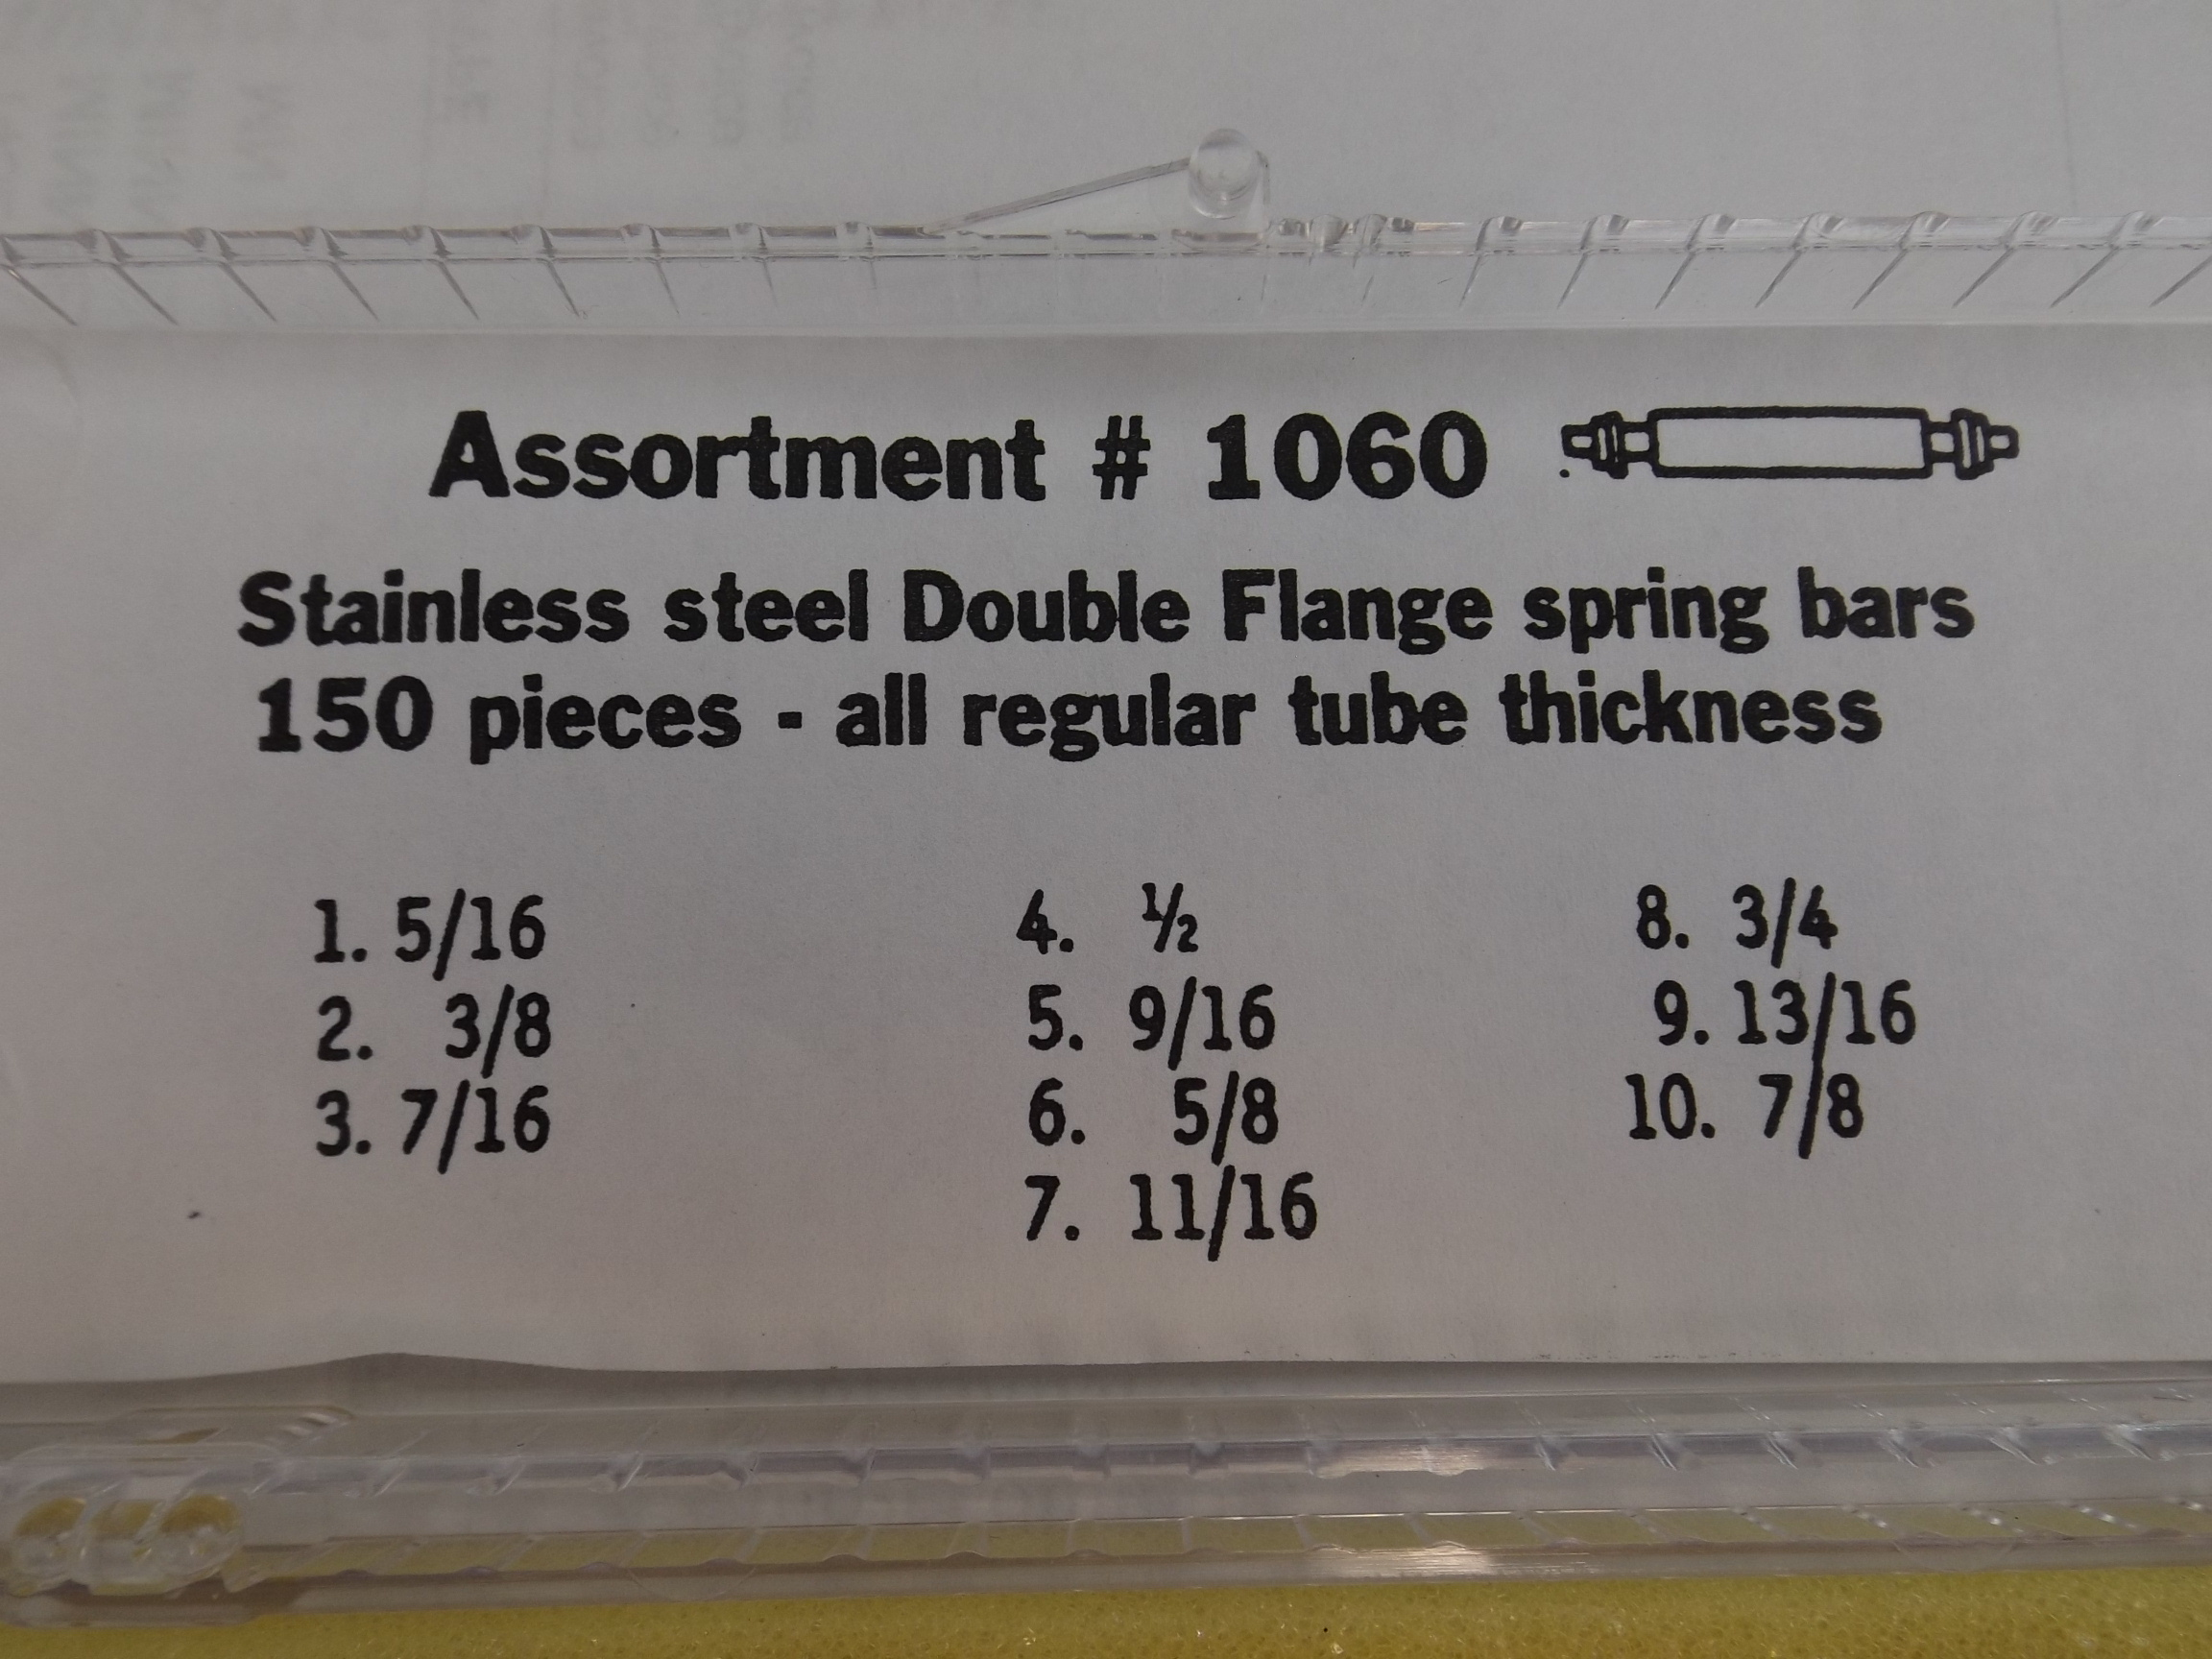 XSB1060A New! Stainless Steel Double Flange Spring Bar Assortment-150 pieces- Acon